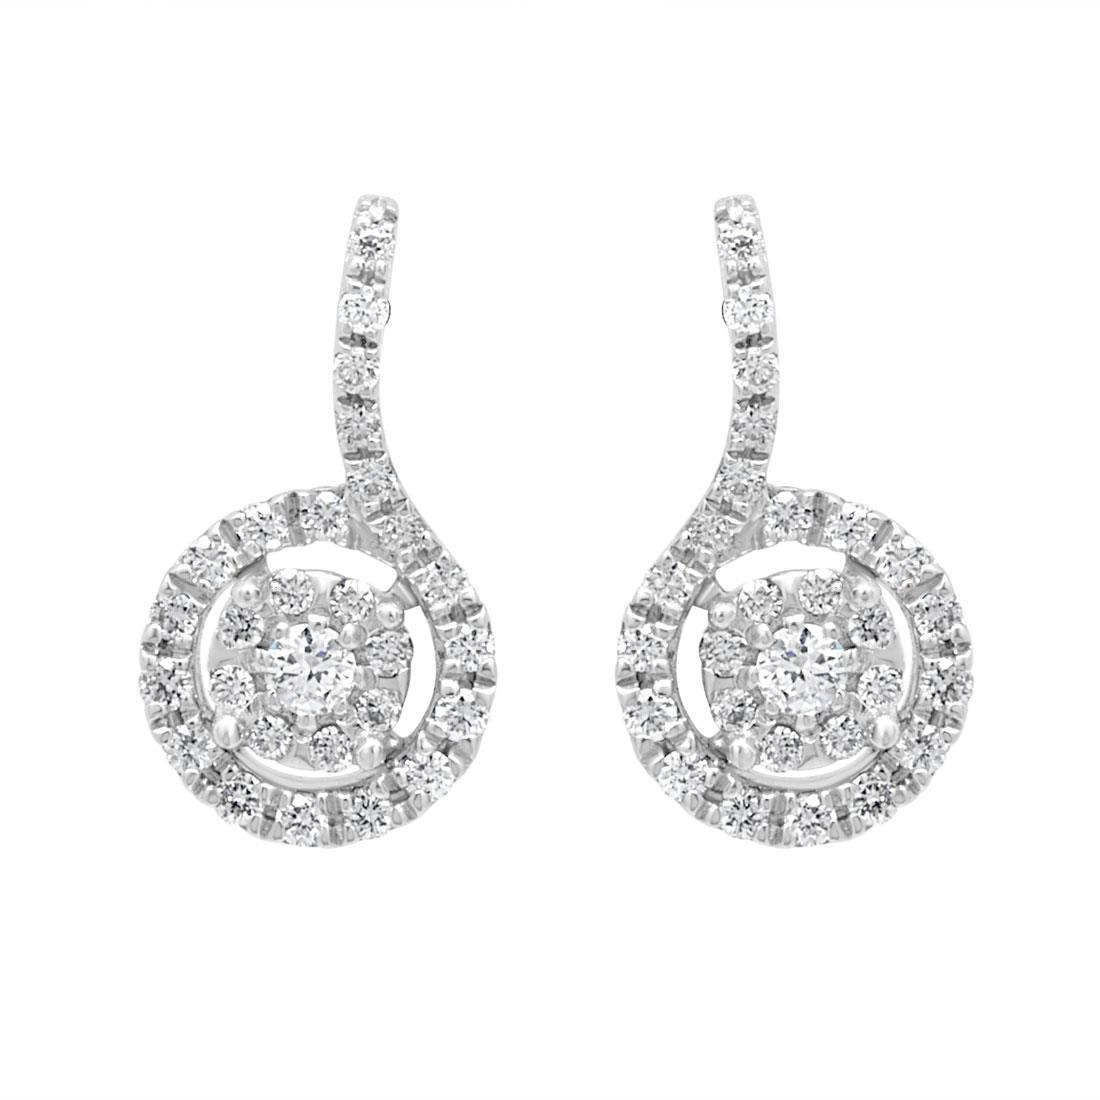 Orecchini con pavé di diamanti 0.30 ct - BLISS